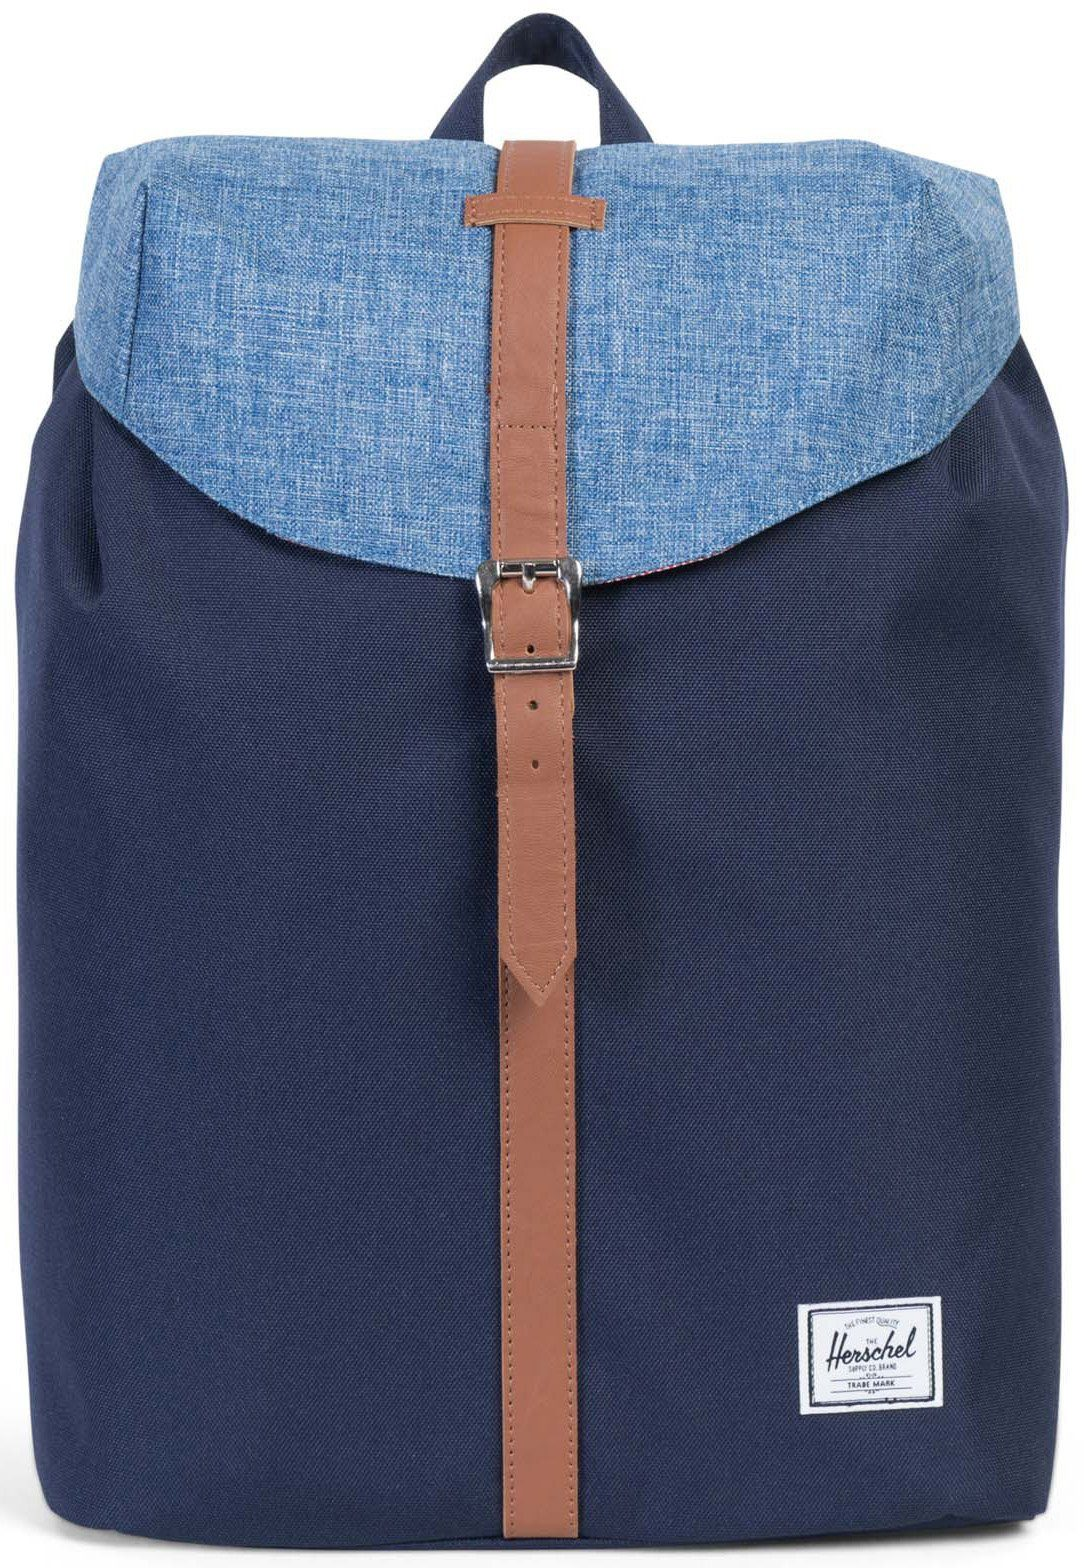 Herschel Rucksack mit Laptopfach, »Post Backpack, Peacoat/Limoges, Crosshatch, Mid Volume«